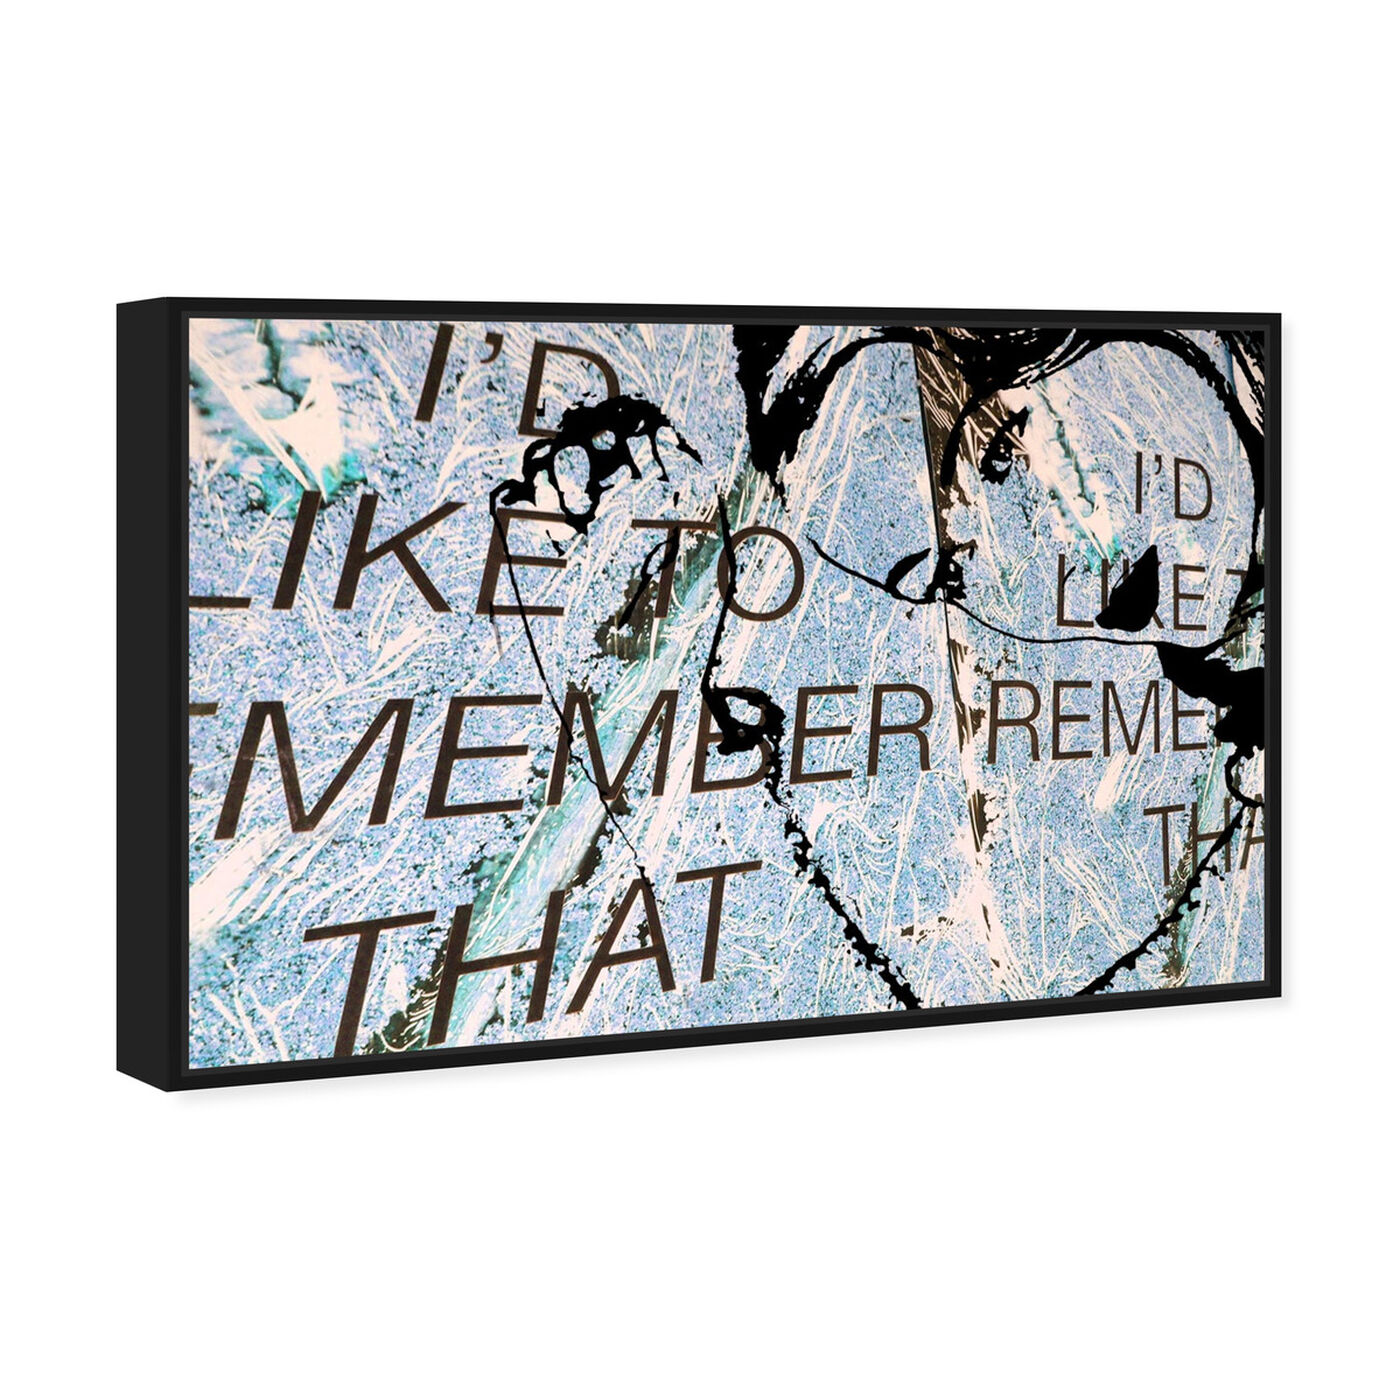 Angled view of I'd Like To Remember featuring typography and quotes and love quotes and sayings art.